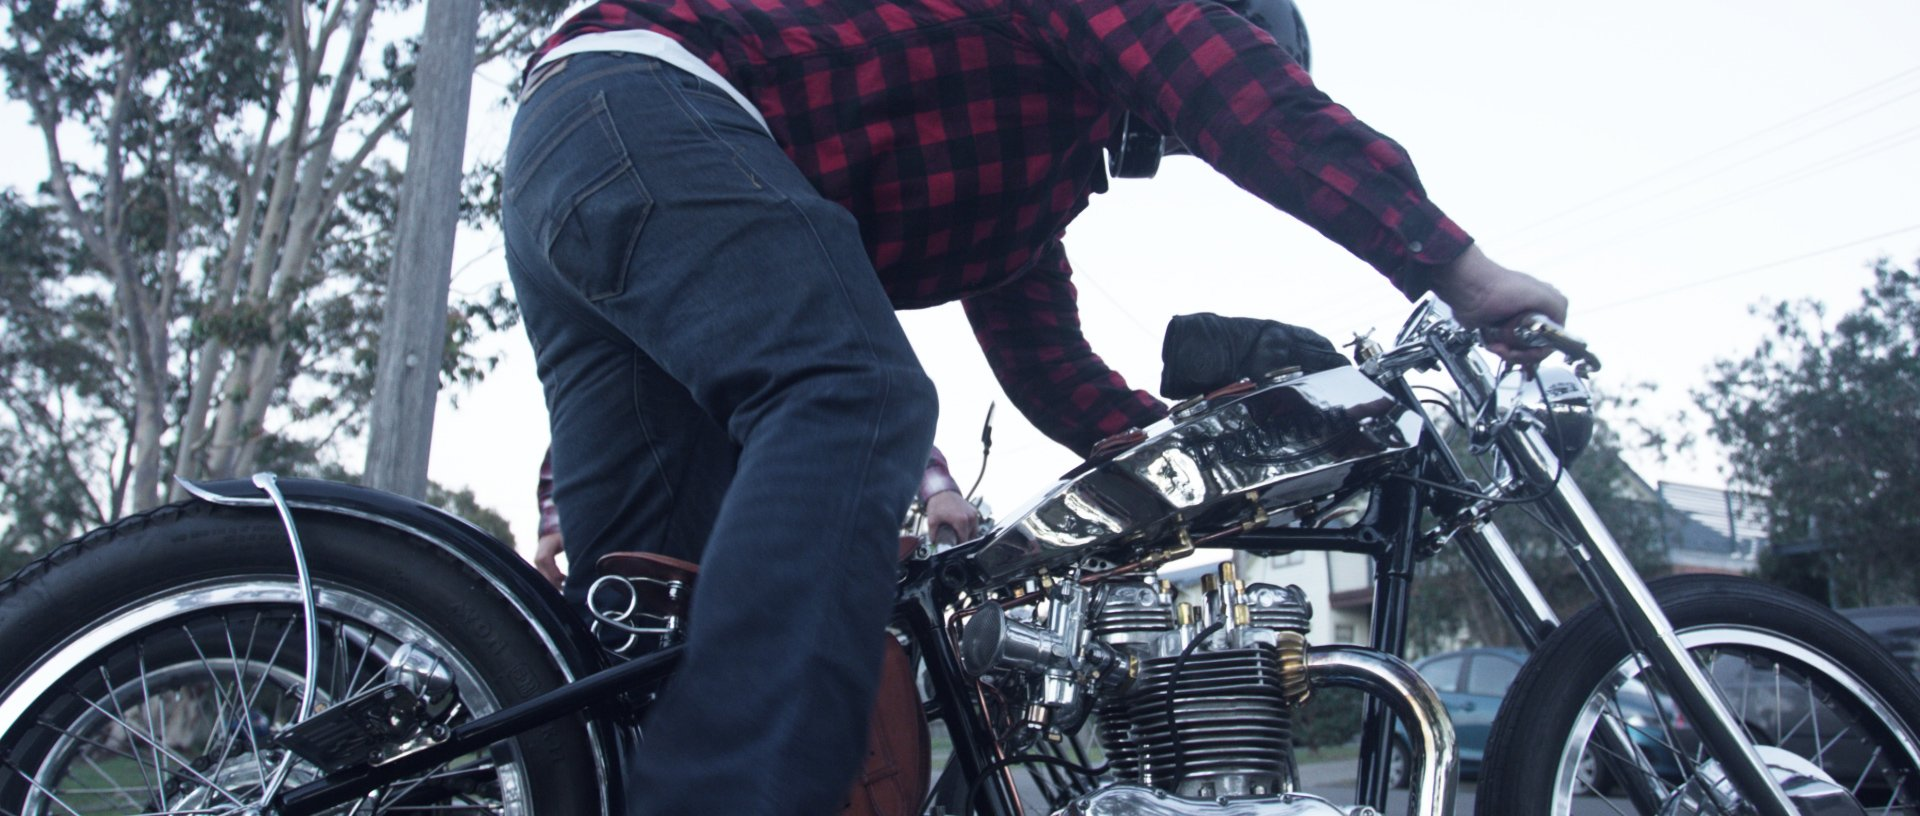 Custom motorcycle documentary handcrafted